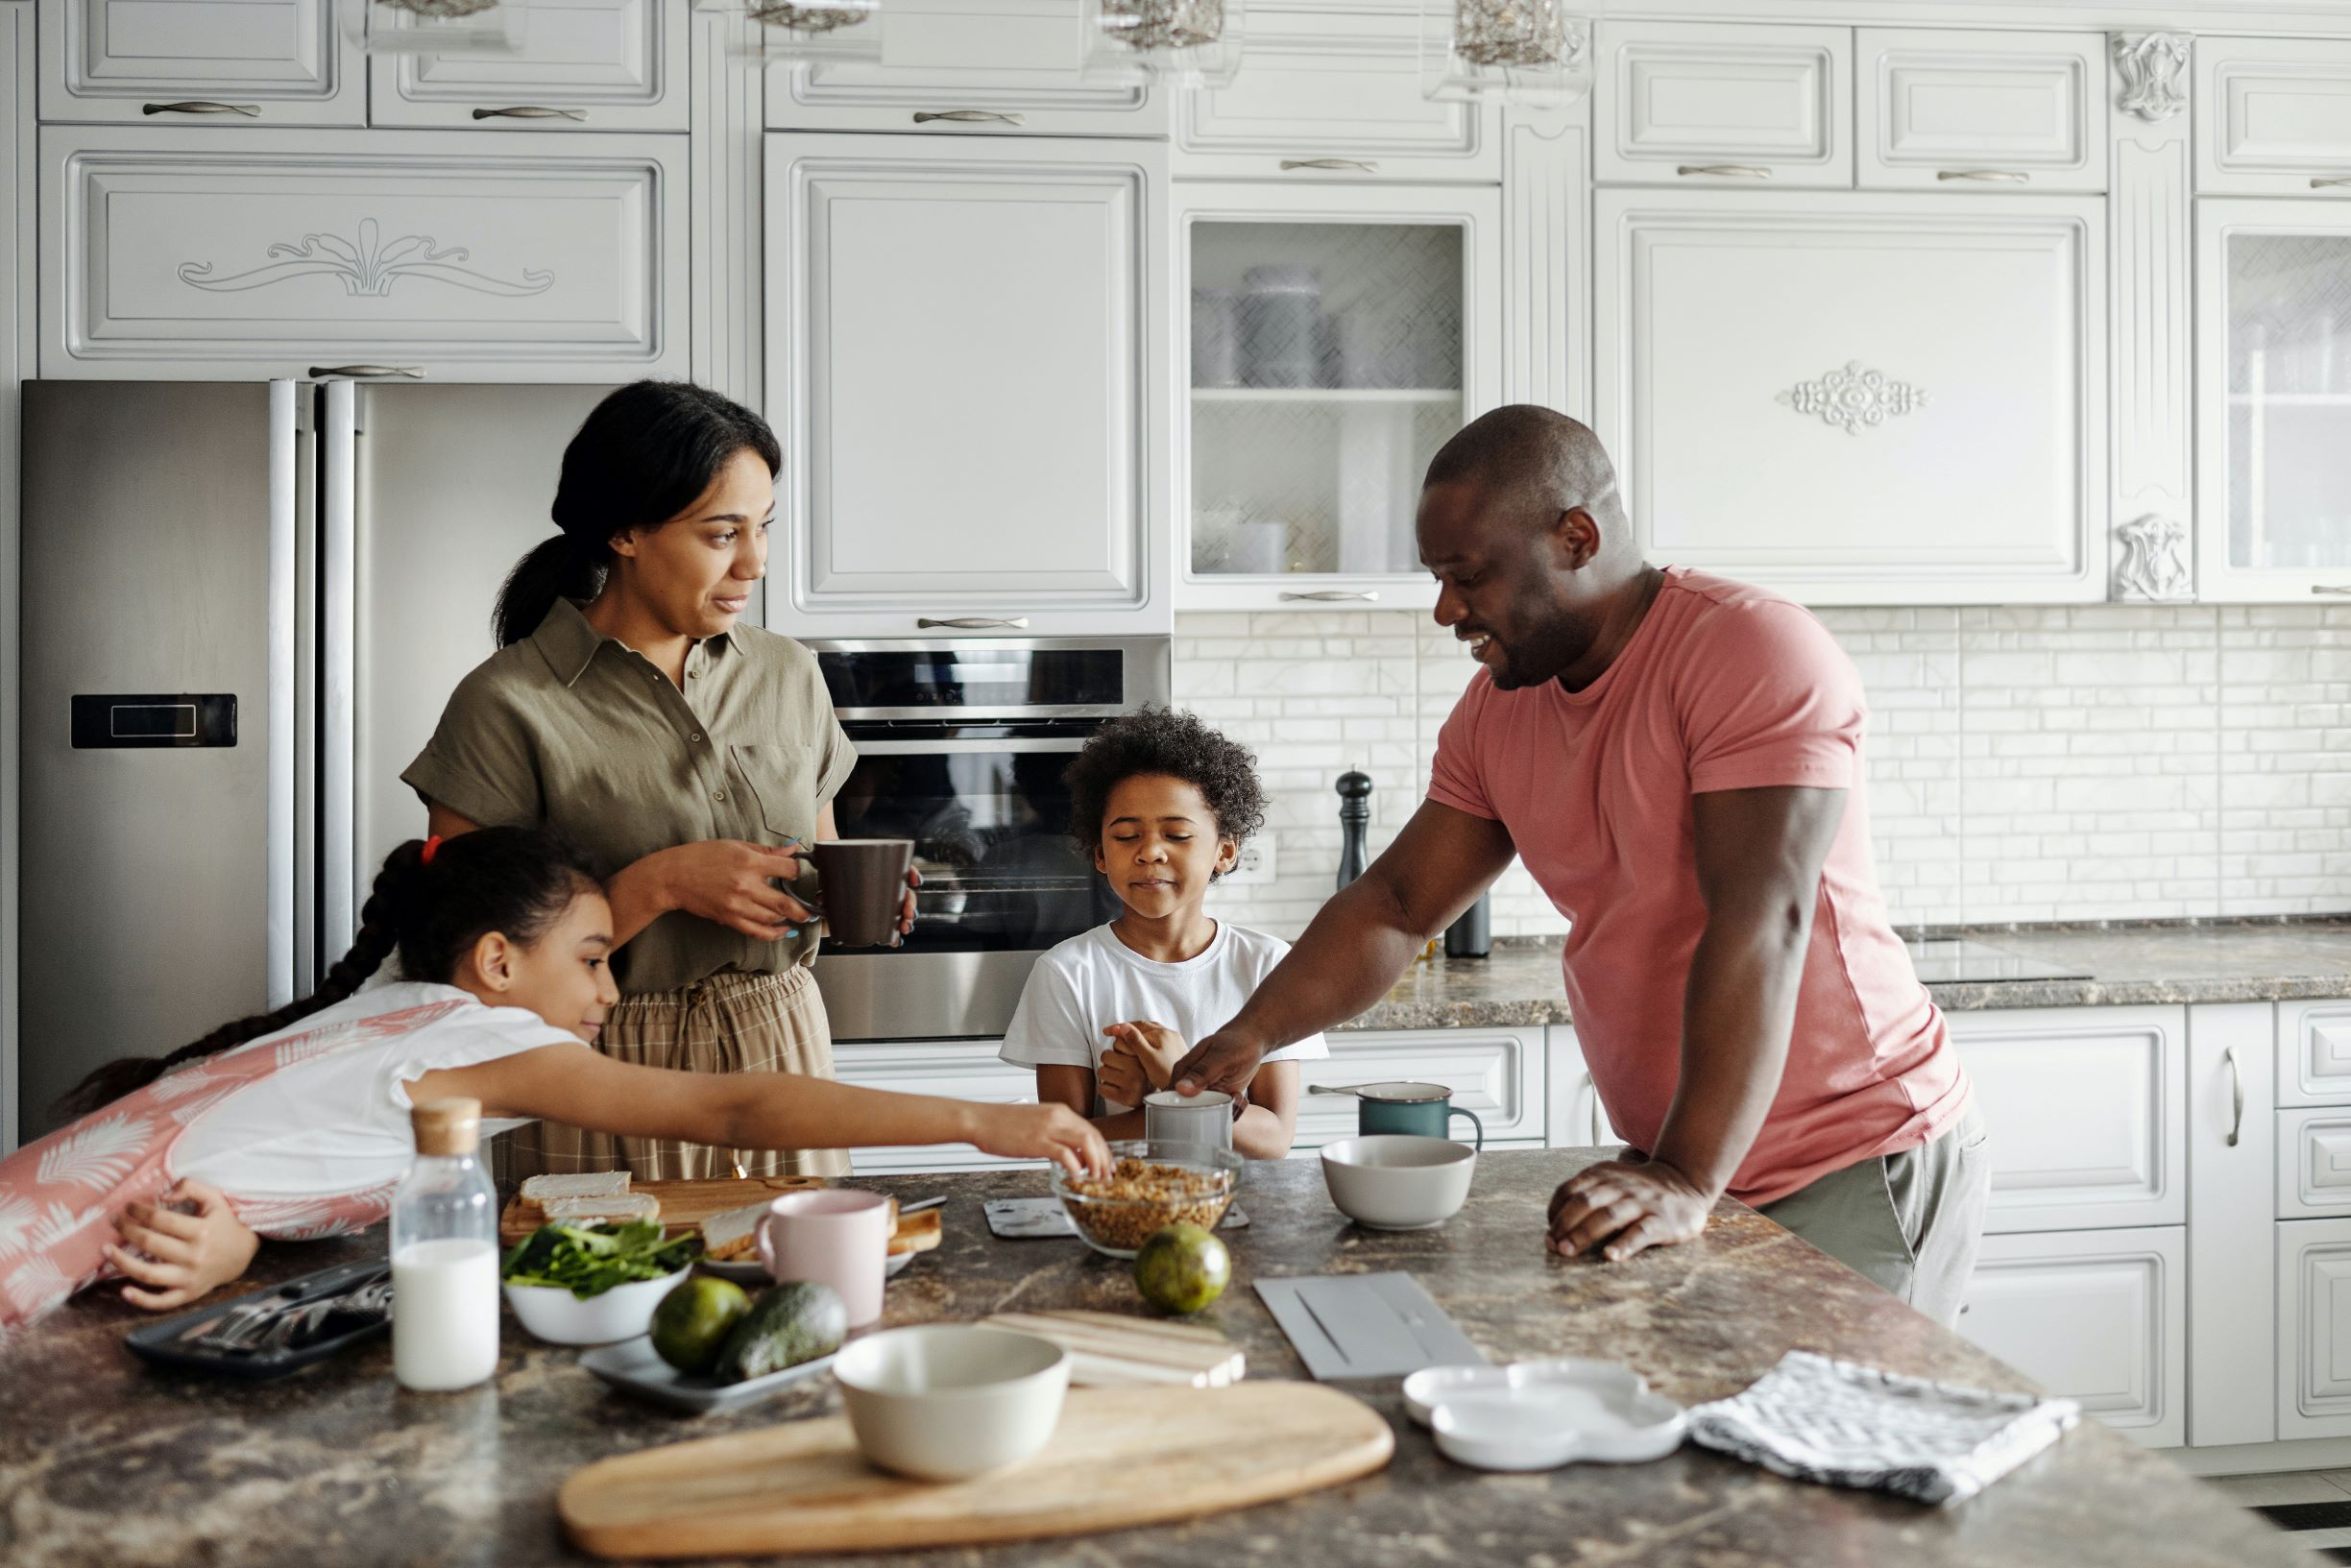 family-making-breakfast-in-the-kitchen-4259138